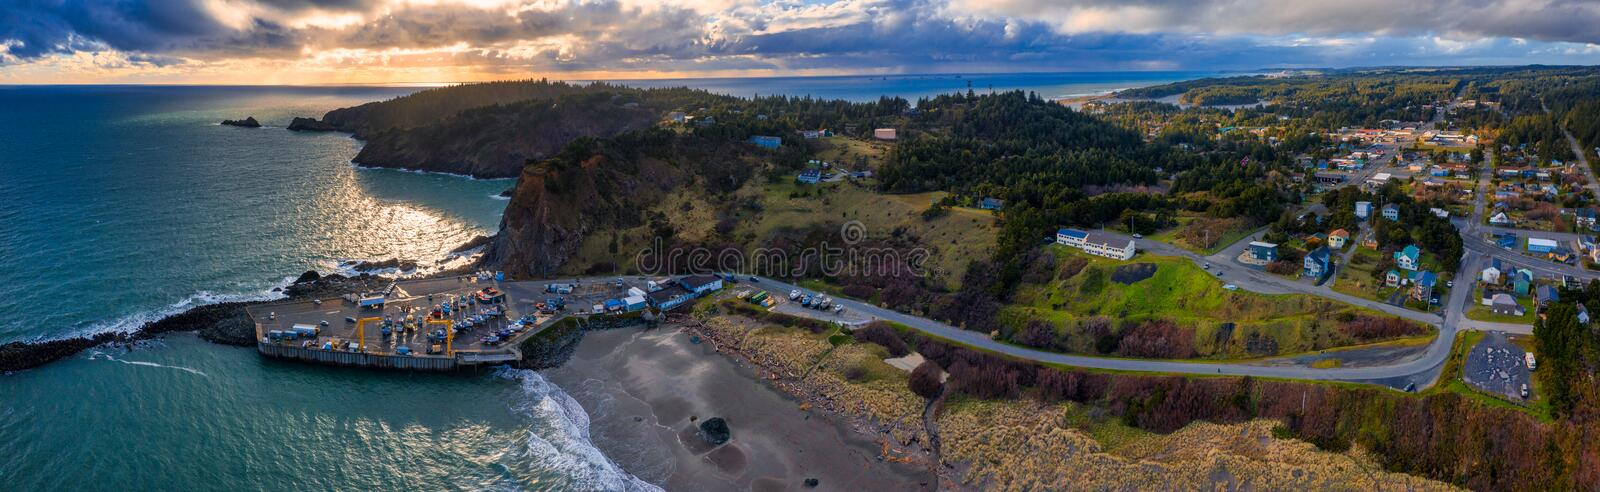 Port Orford Oregon Harbor. Aerial panorama of harbor and marina in Port Orford at the Southern Oregon coast, United States, during sunset royalty free stock photo